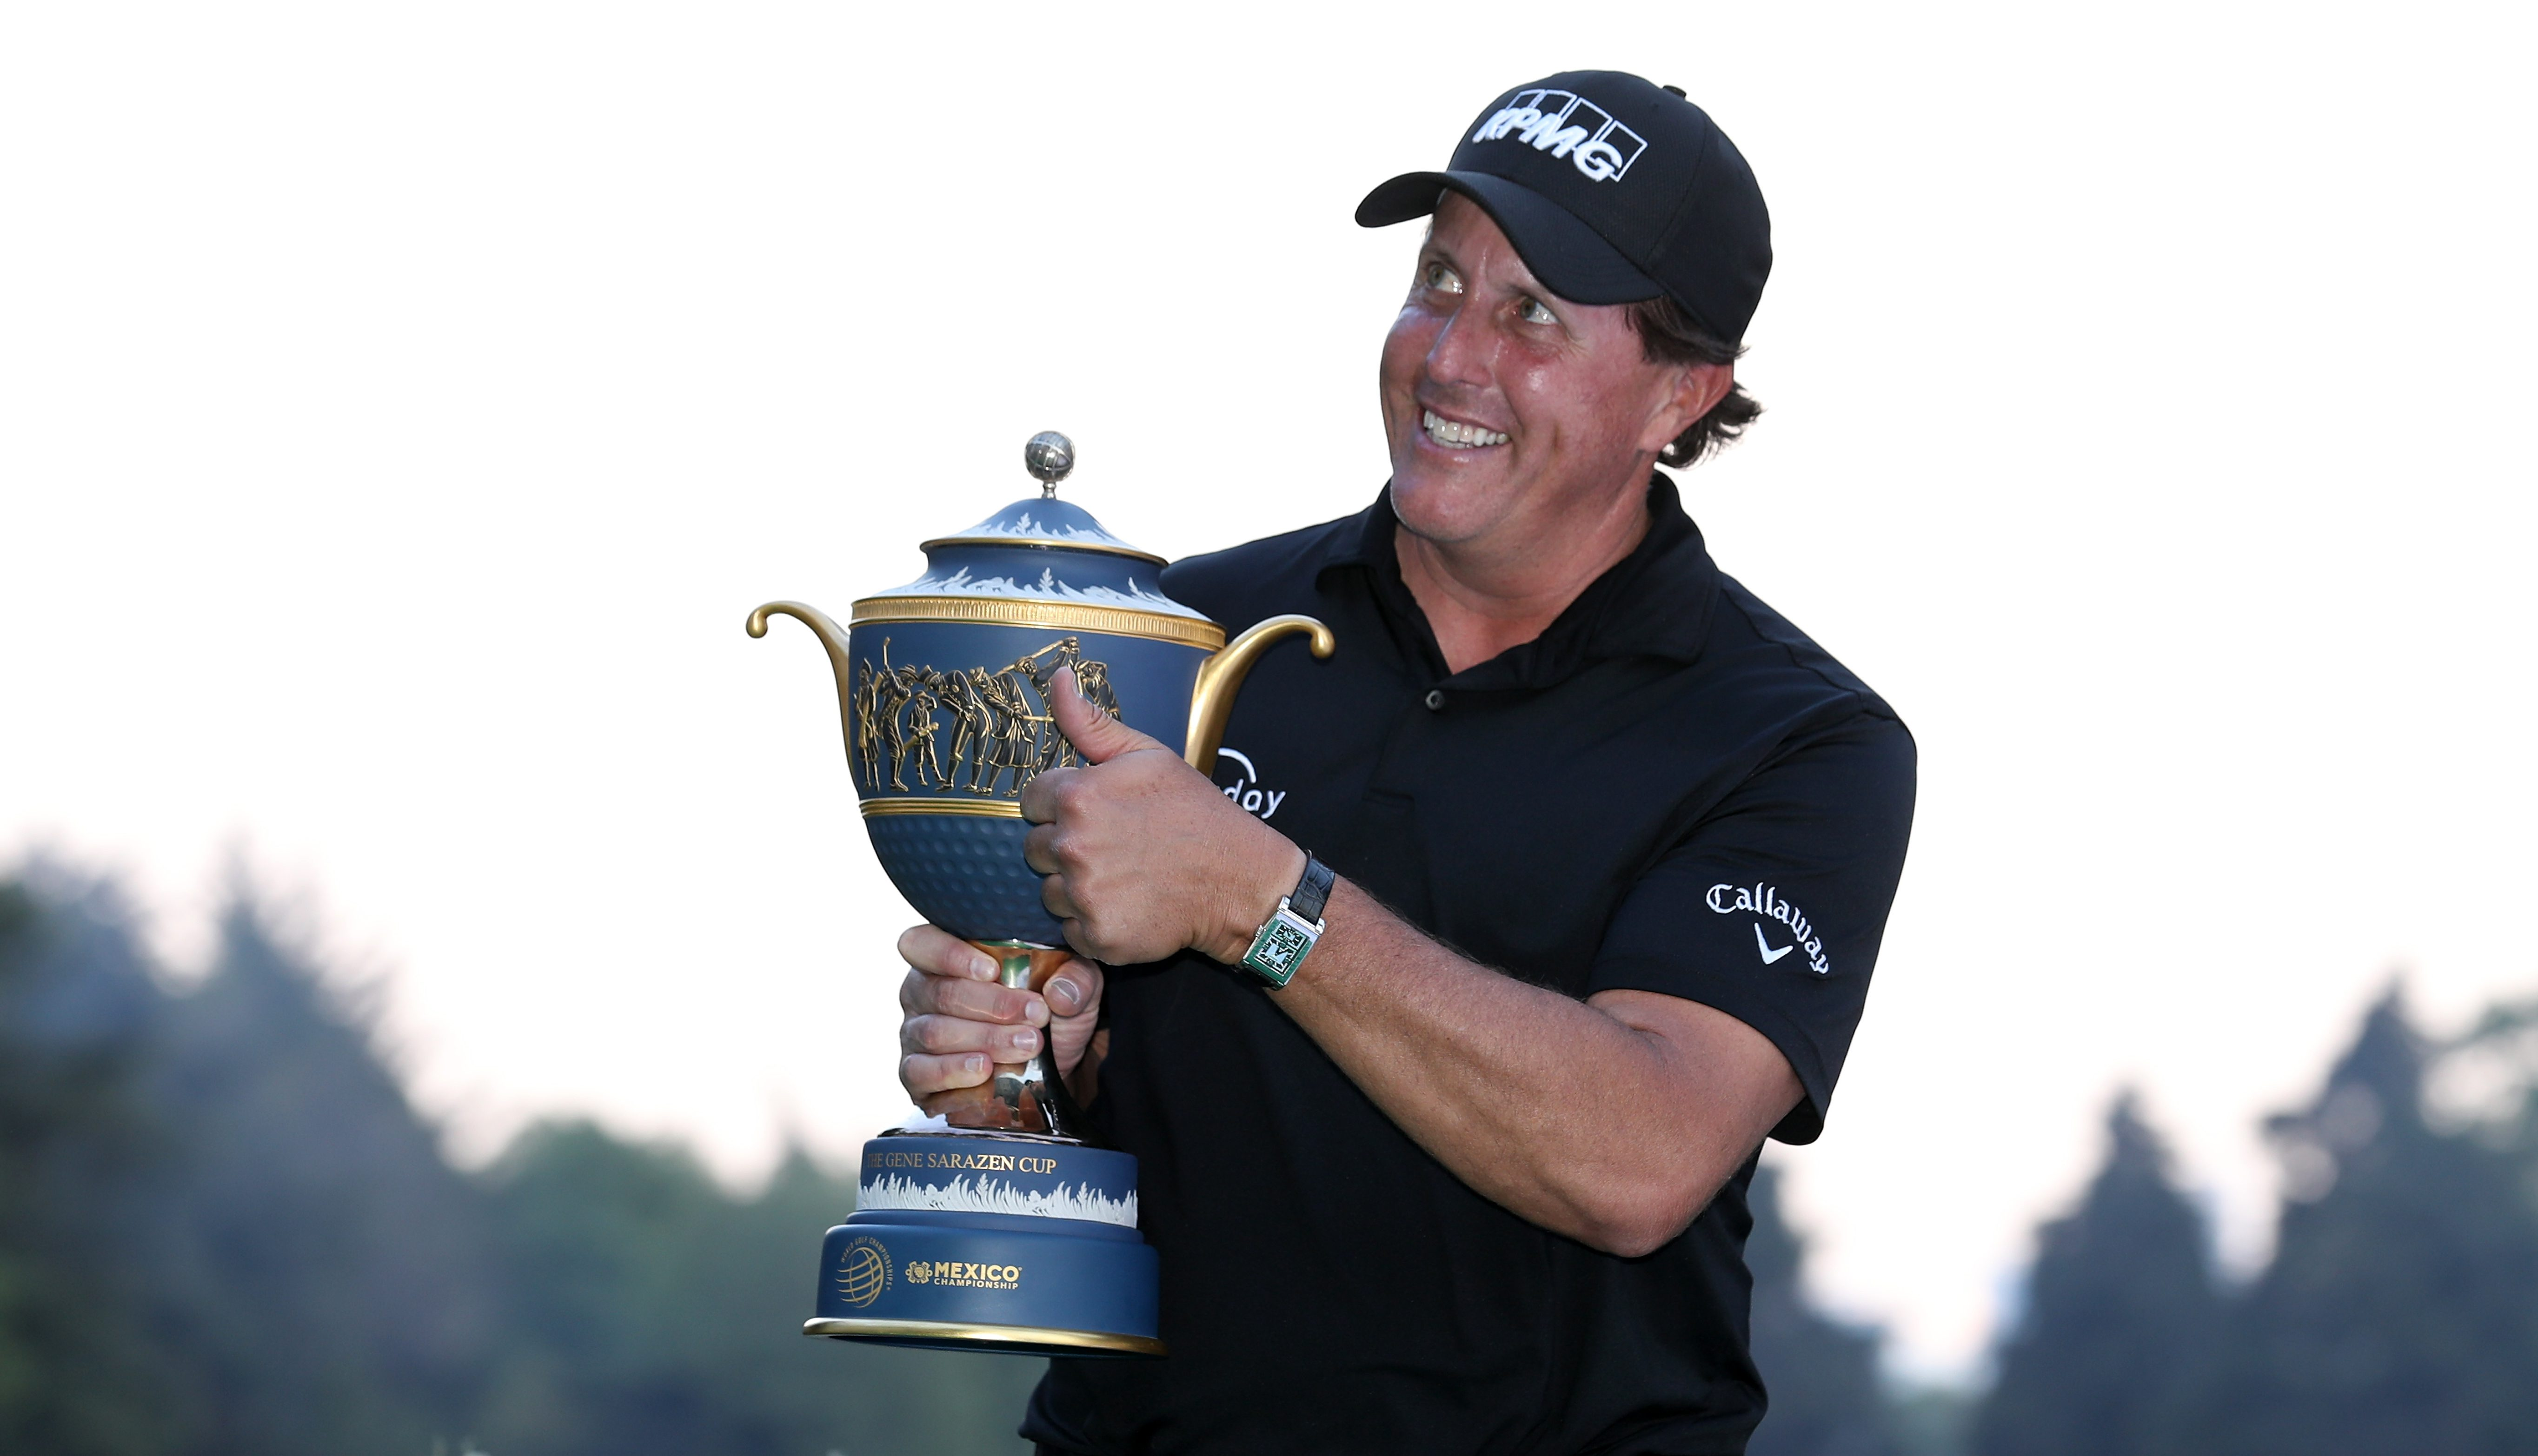 MEXICO CITY, MEXICO - MARCH 04: Phil Mickelson gives a thumb up to fans as he holds the Gene Sarazen Cup after winning the World Golf Championships-Mexico Championship on a playoff hole at Club De Golf Chapultepec on March 4, 2018 in Mexico City, Mexico. (Photo by Rob Carr/Getty Images)